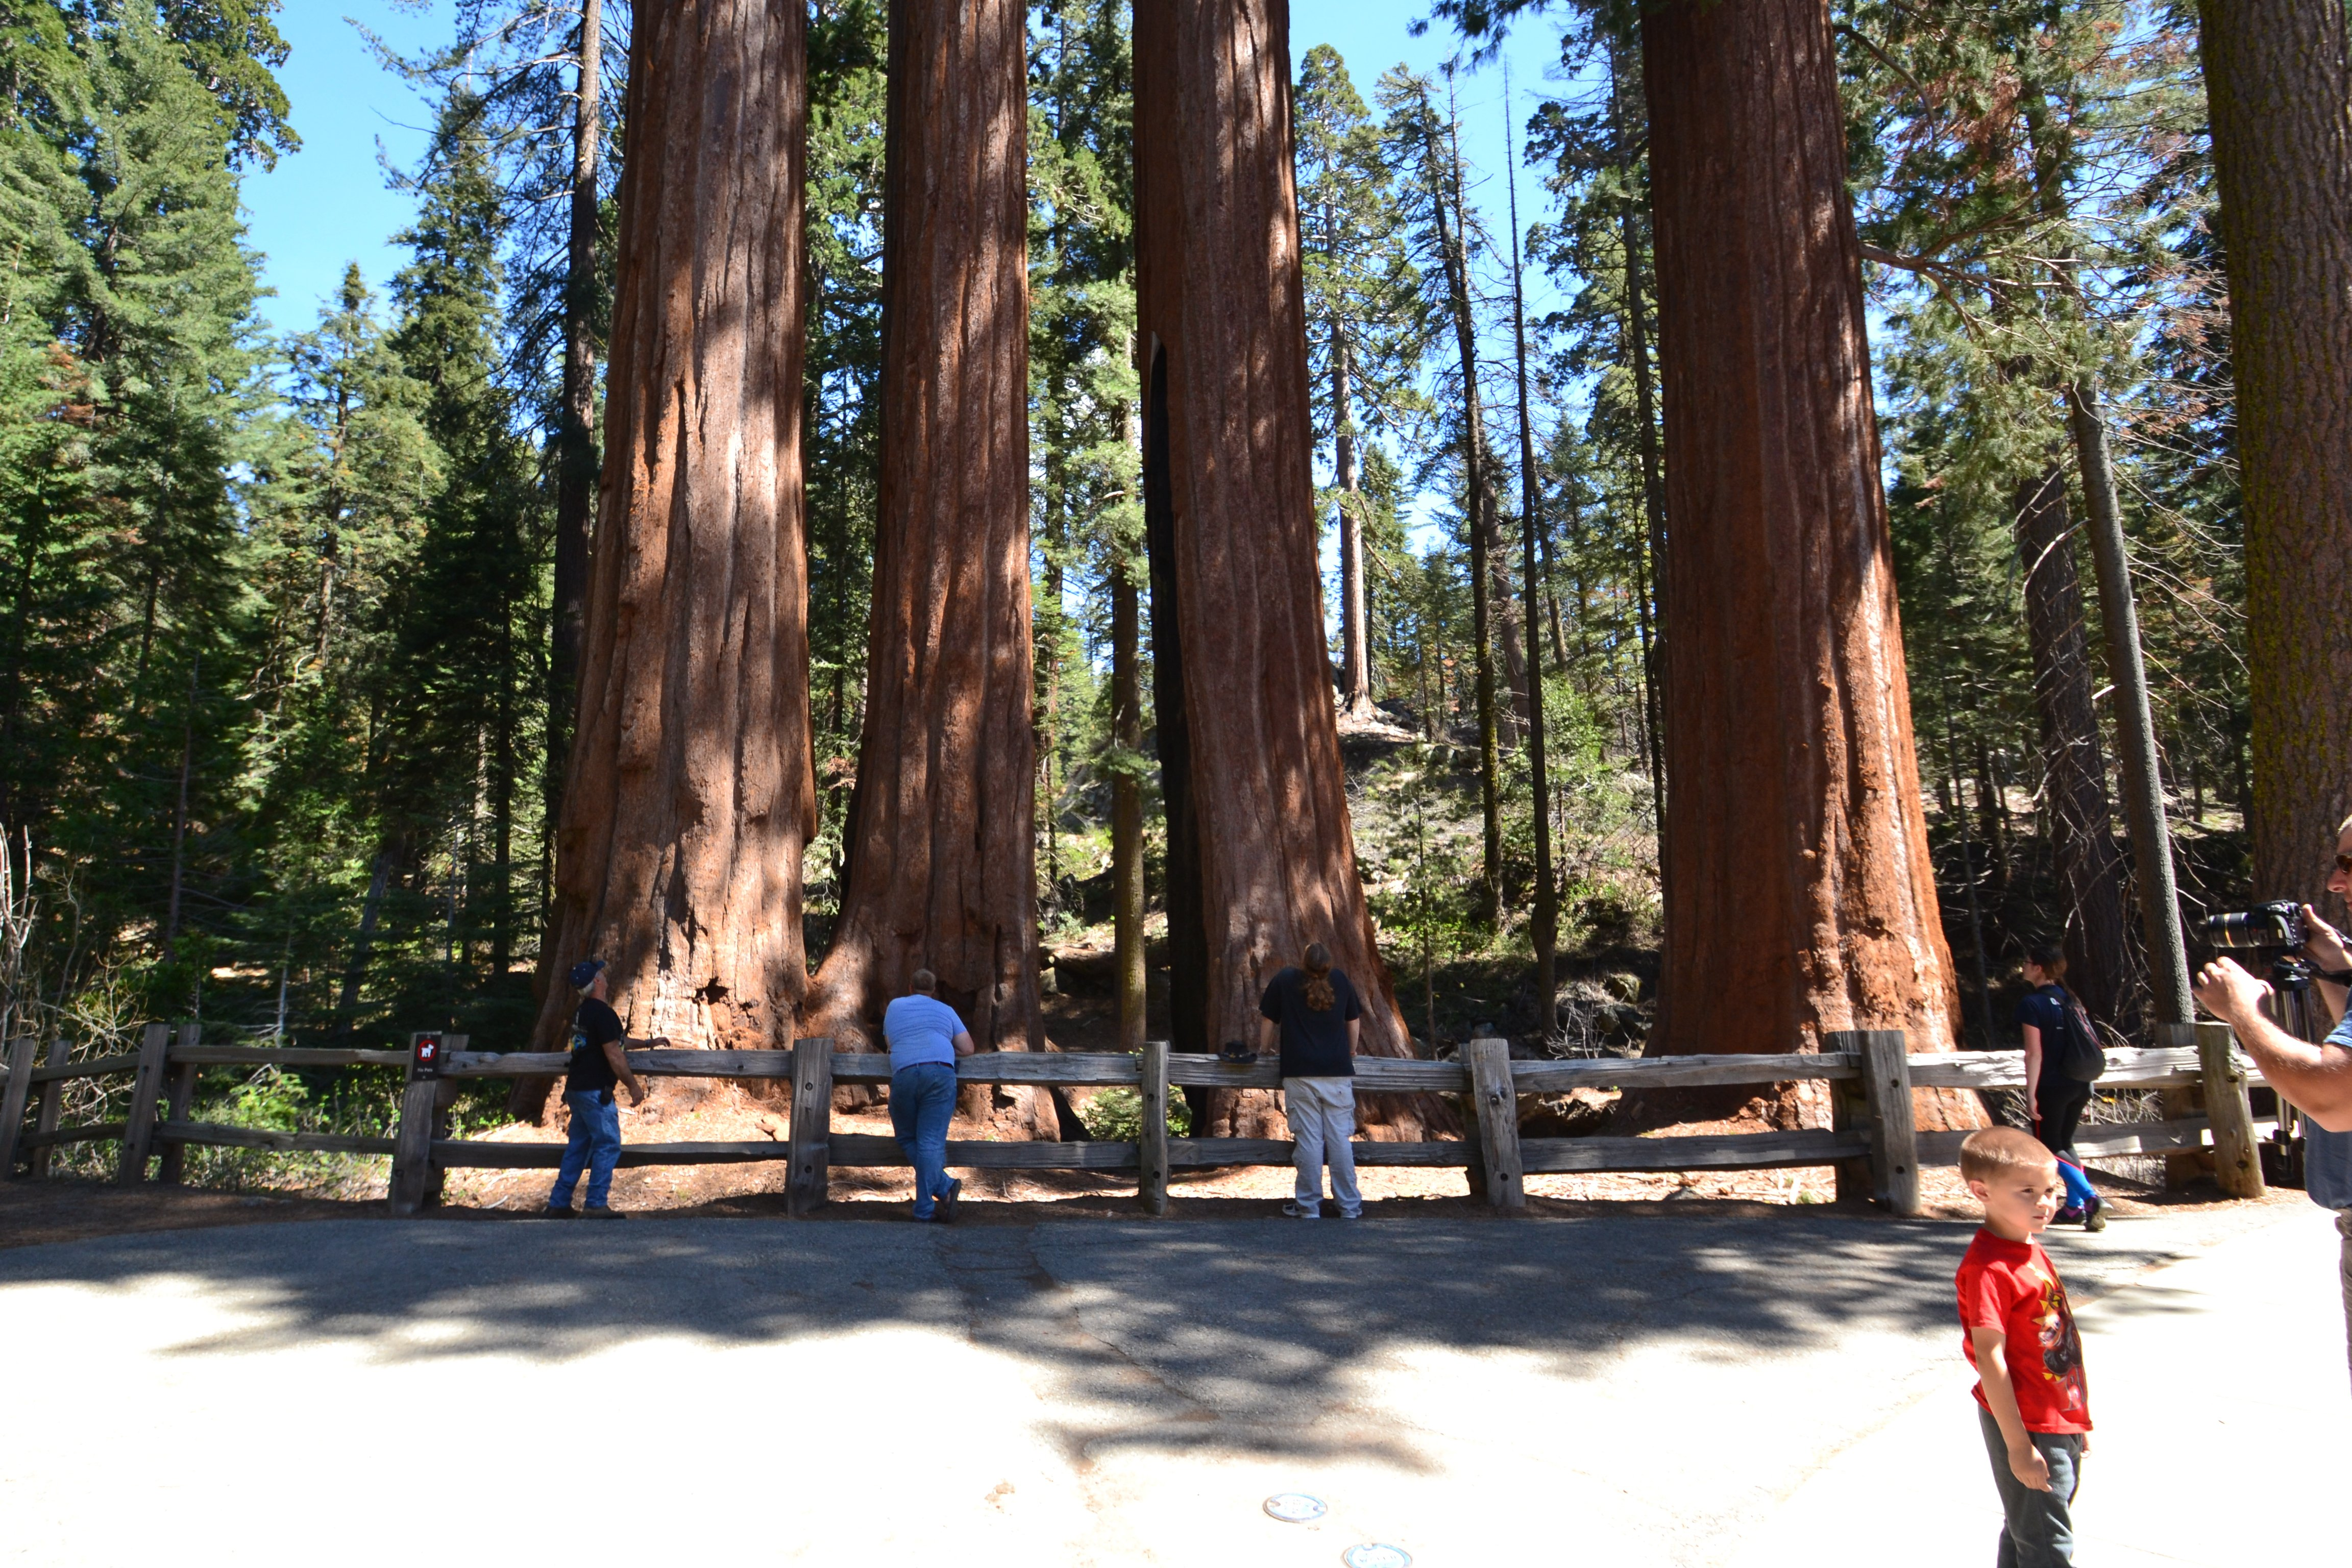 On lookers of a few Giant Sequoia Trees Spring 2017